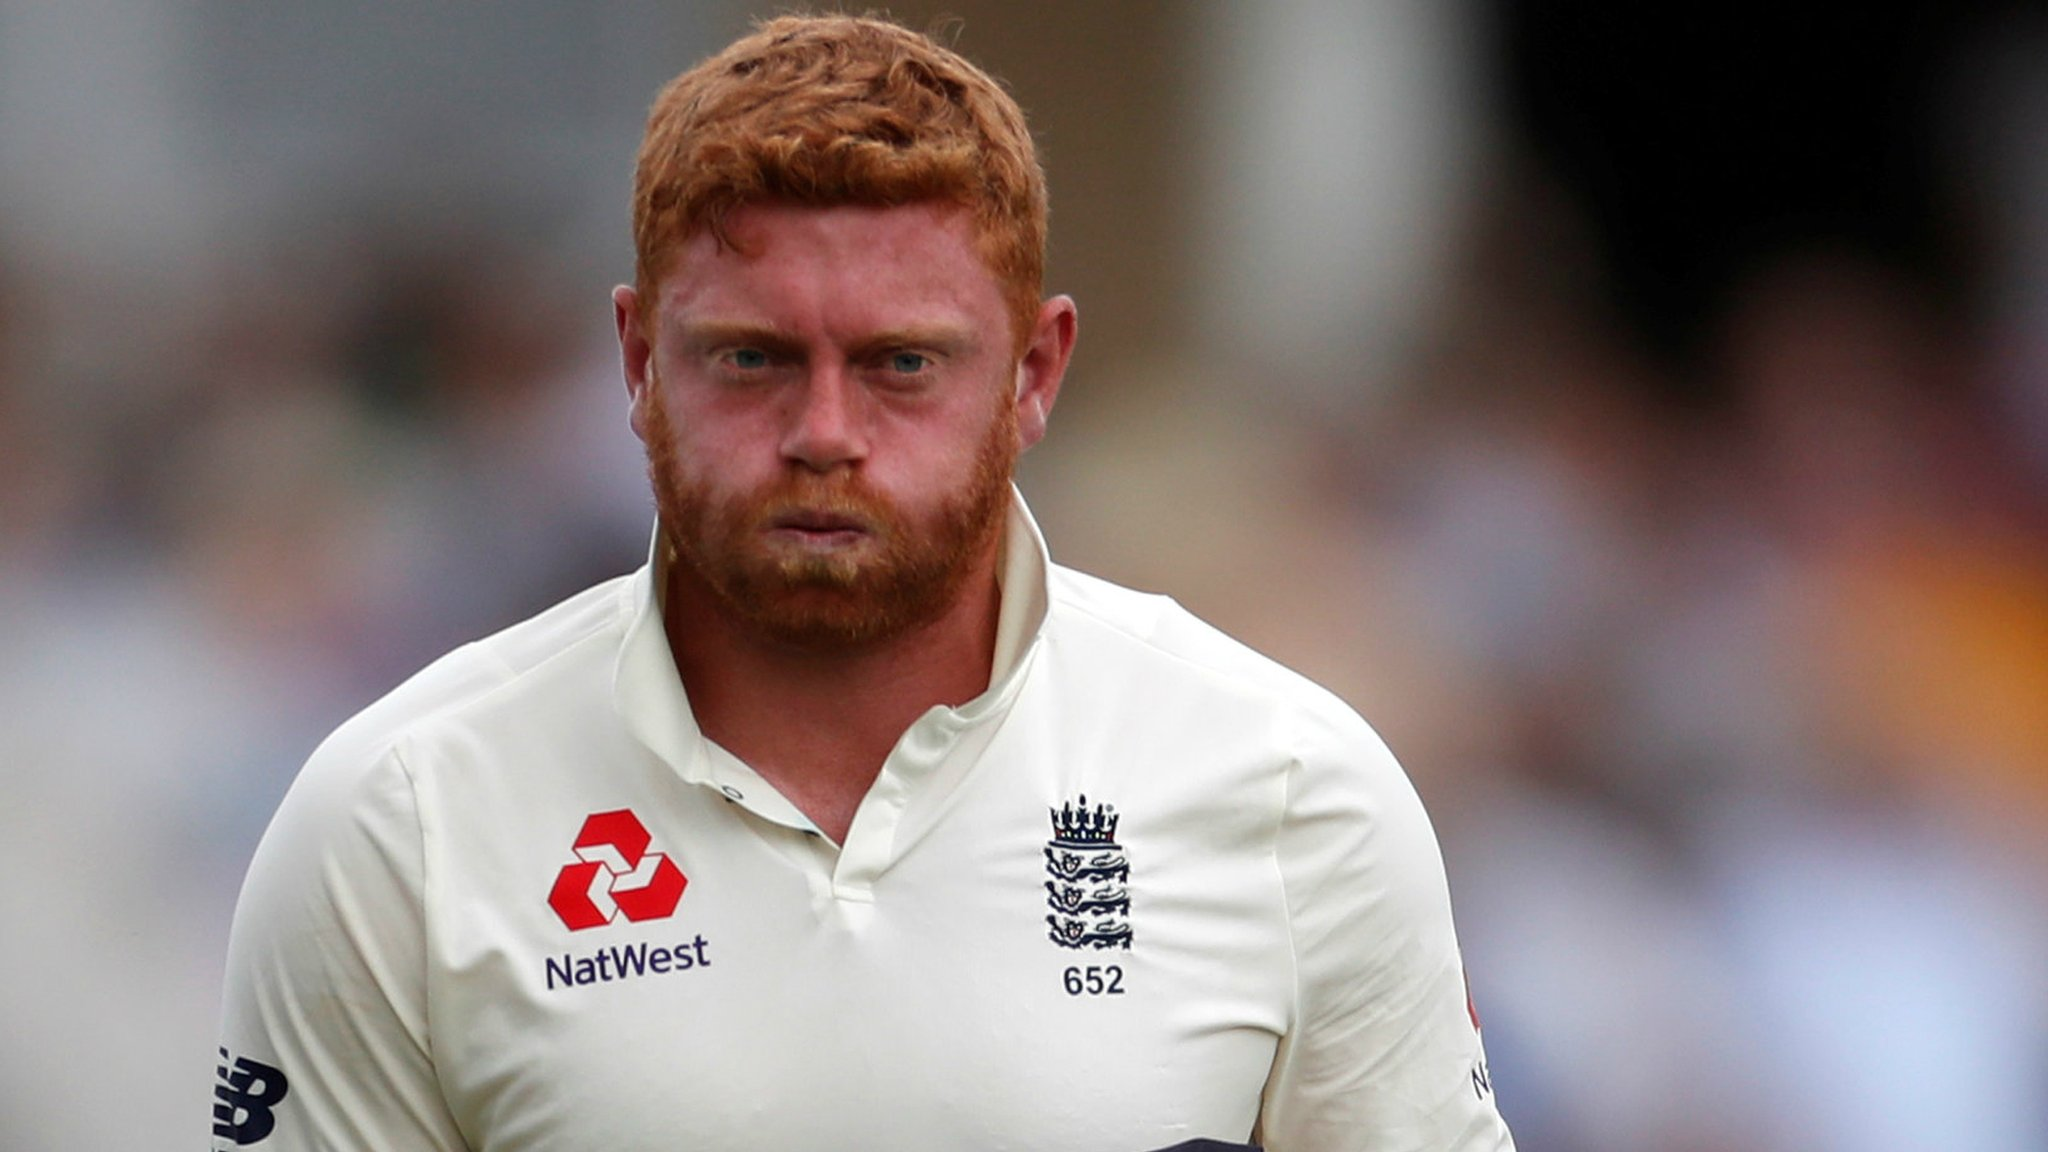 England v India: 'That was painful' - Jonny Bairstow leaves field with finger injury